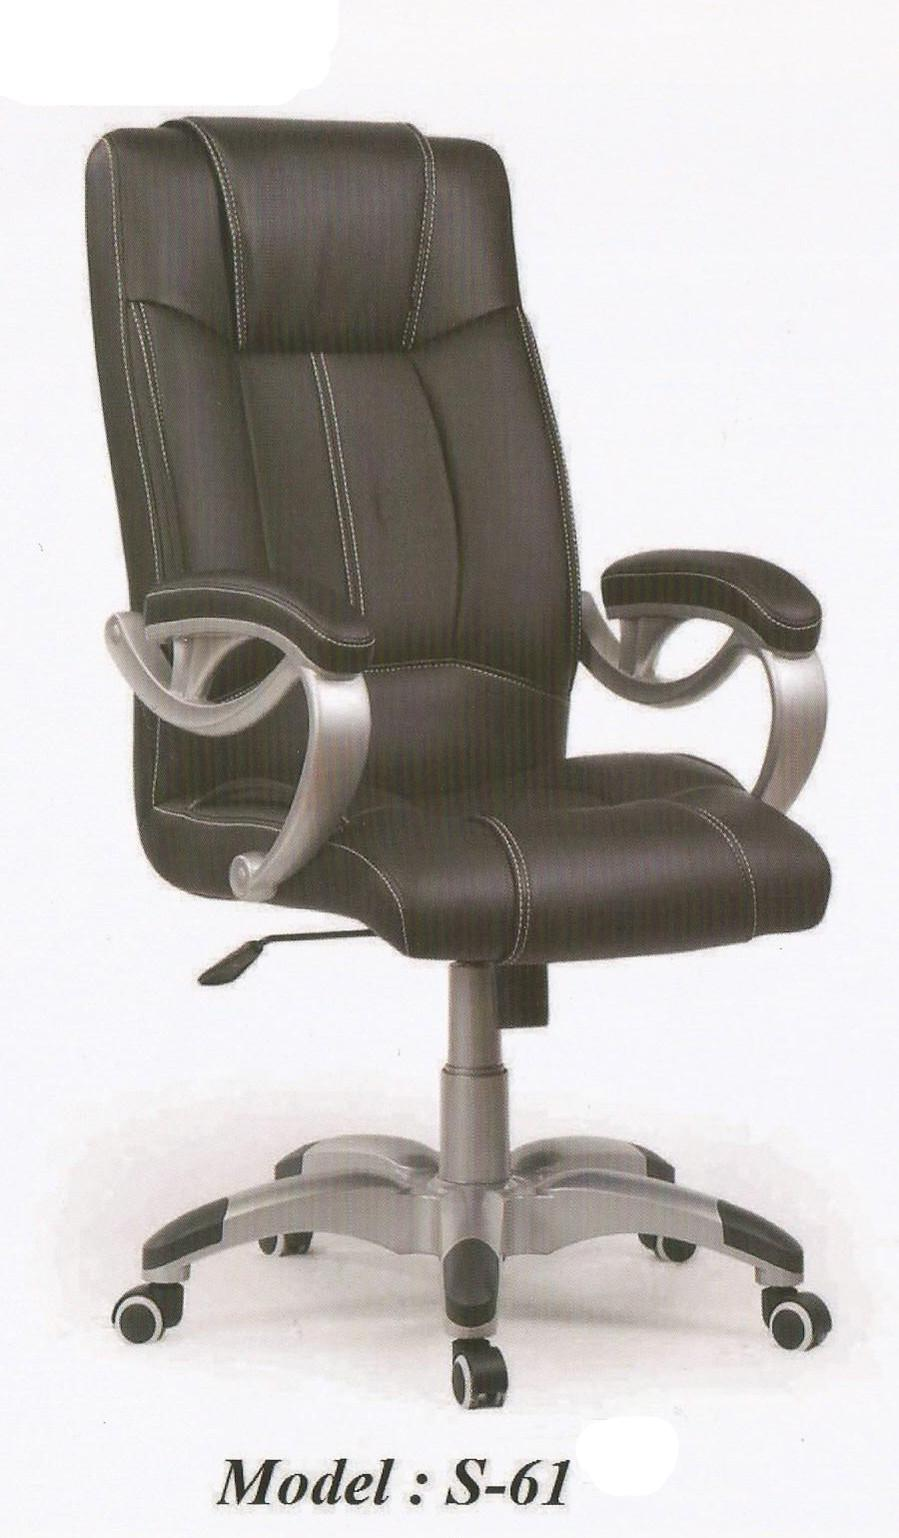 Nicehome lowest price 'offer furniture office chair model - S61